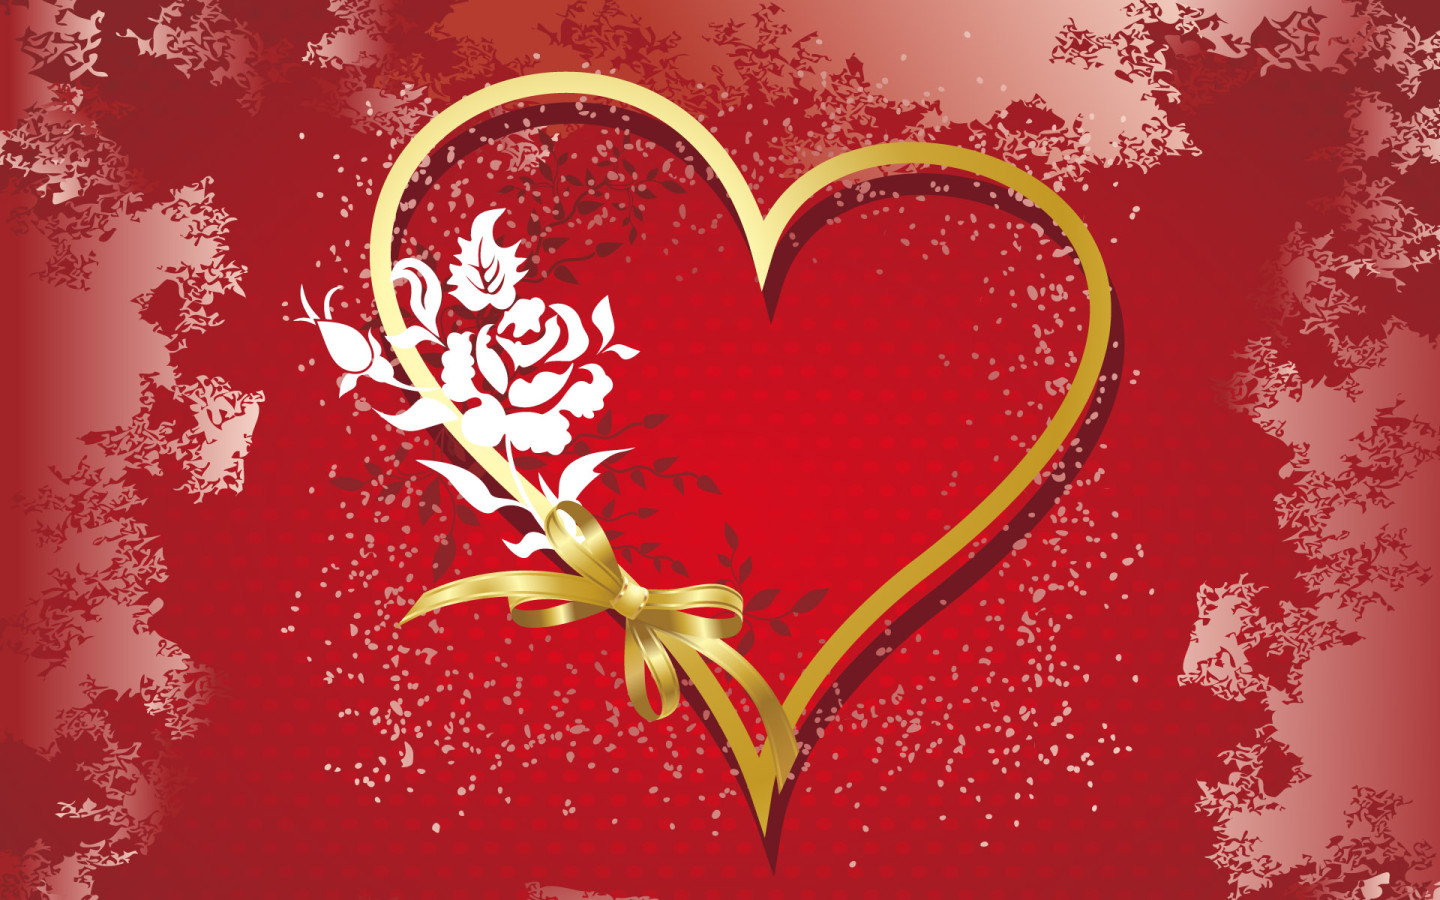 Love Wallpapers Valentine Day : Valentine Hearts Wallpaper, Love Heart Wallpapers Valentine s Day